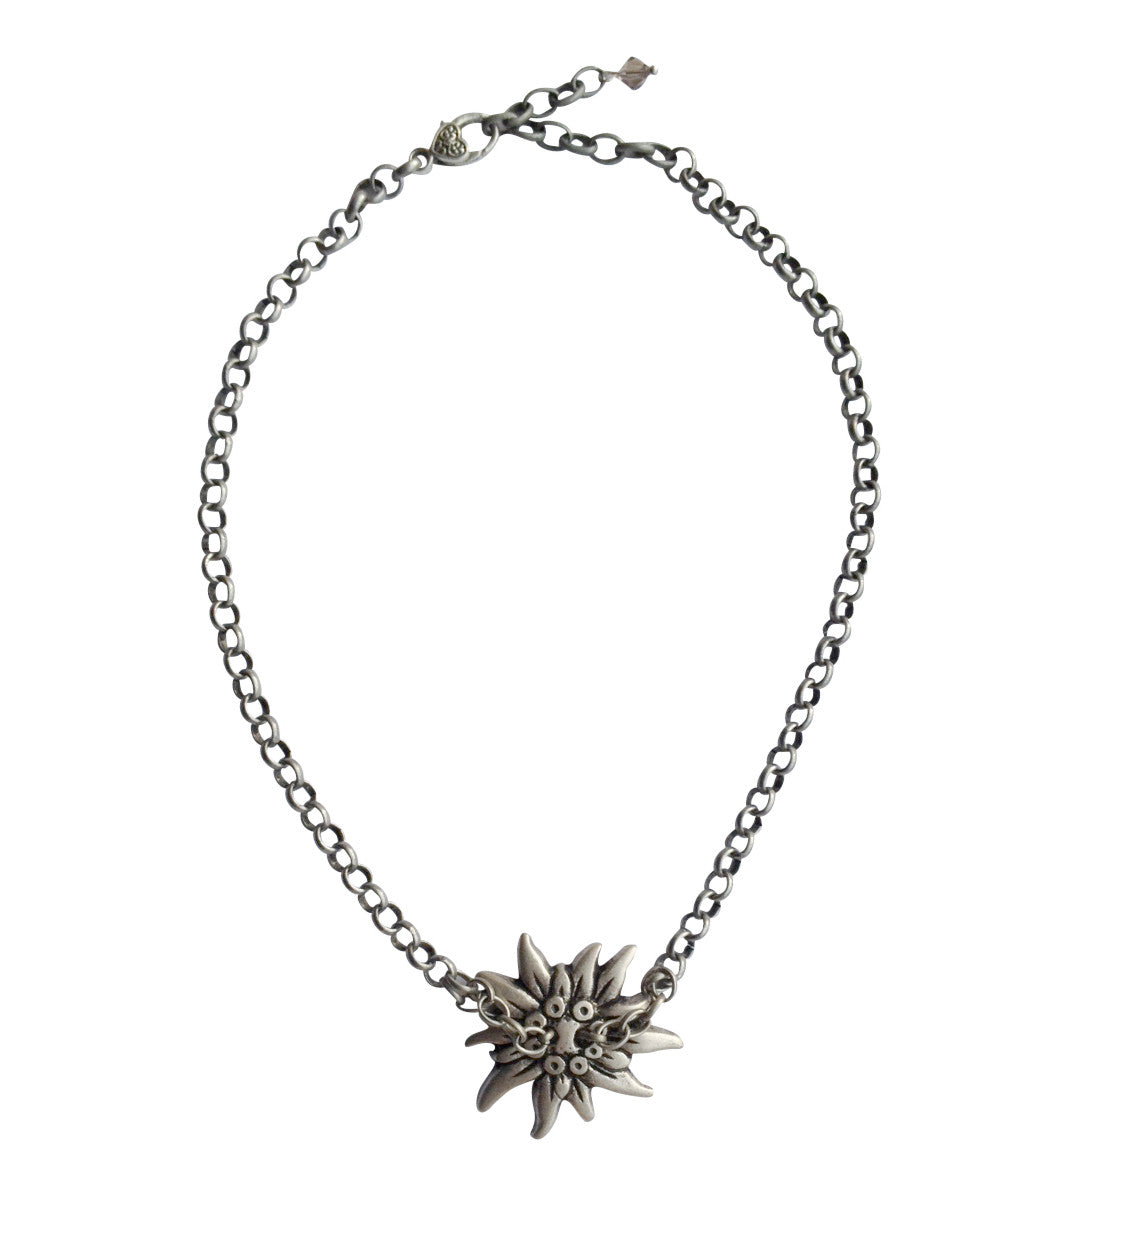 Industrial Style Edelweiss Necklace - Rare Dirndl